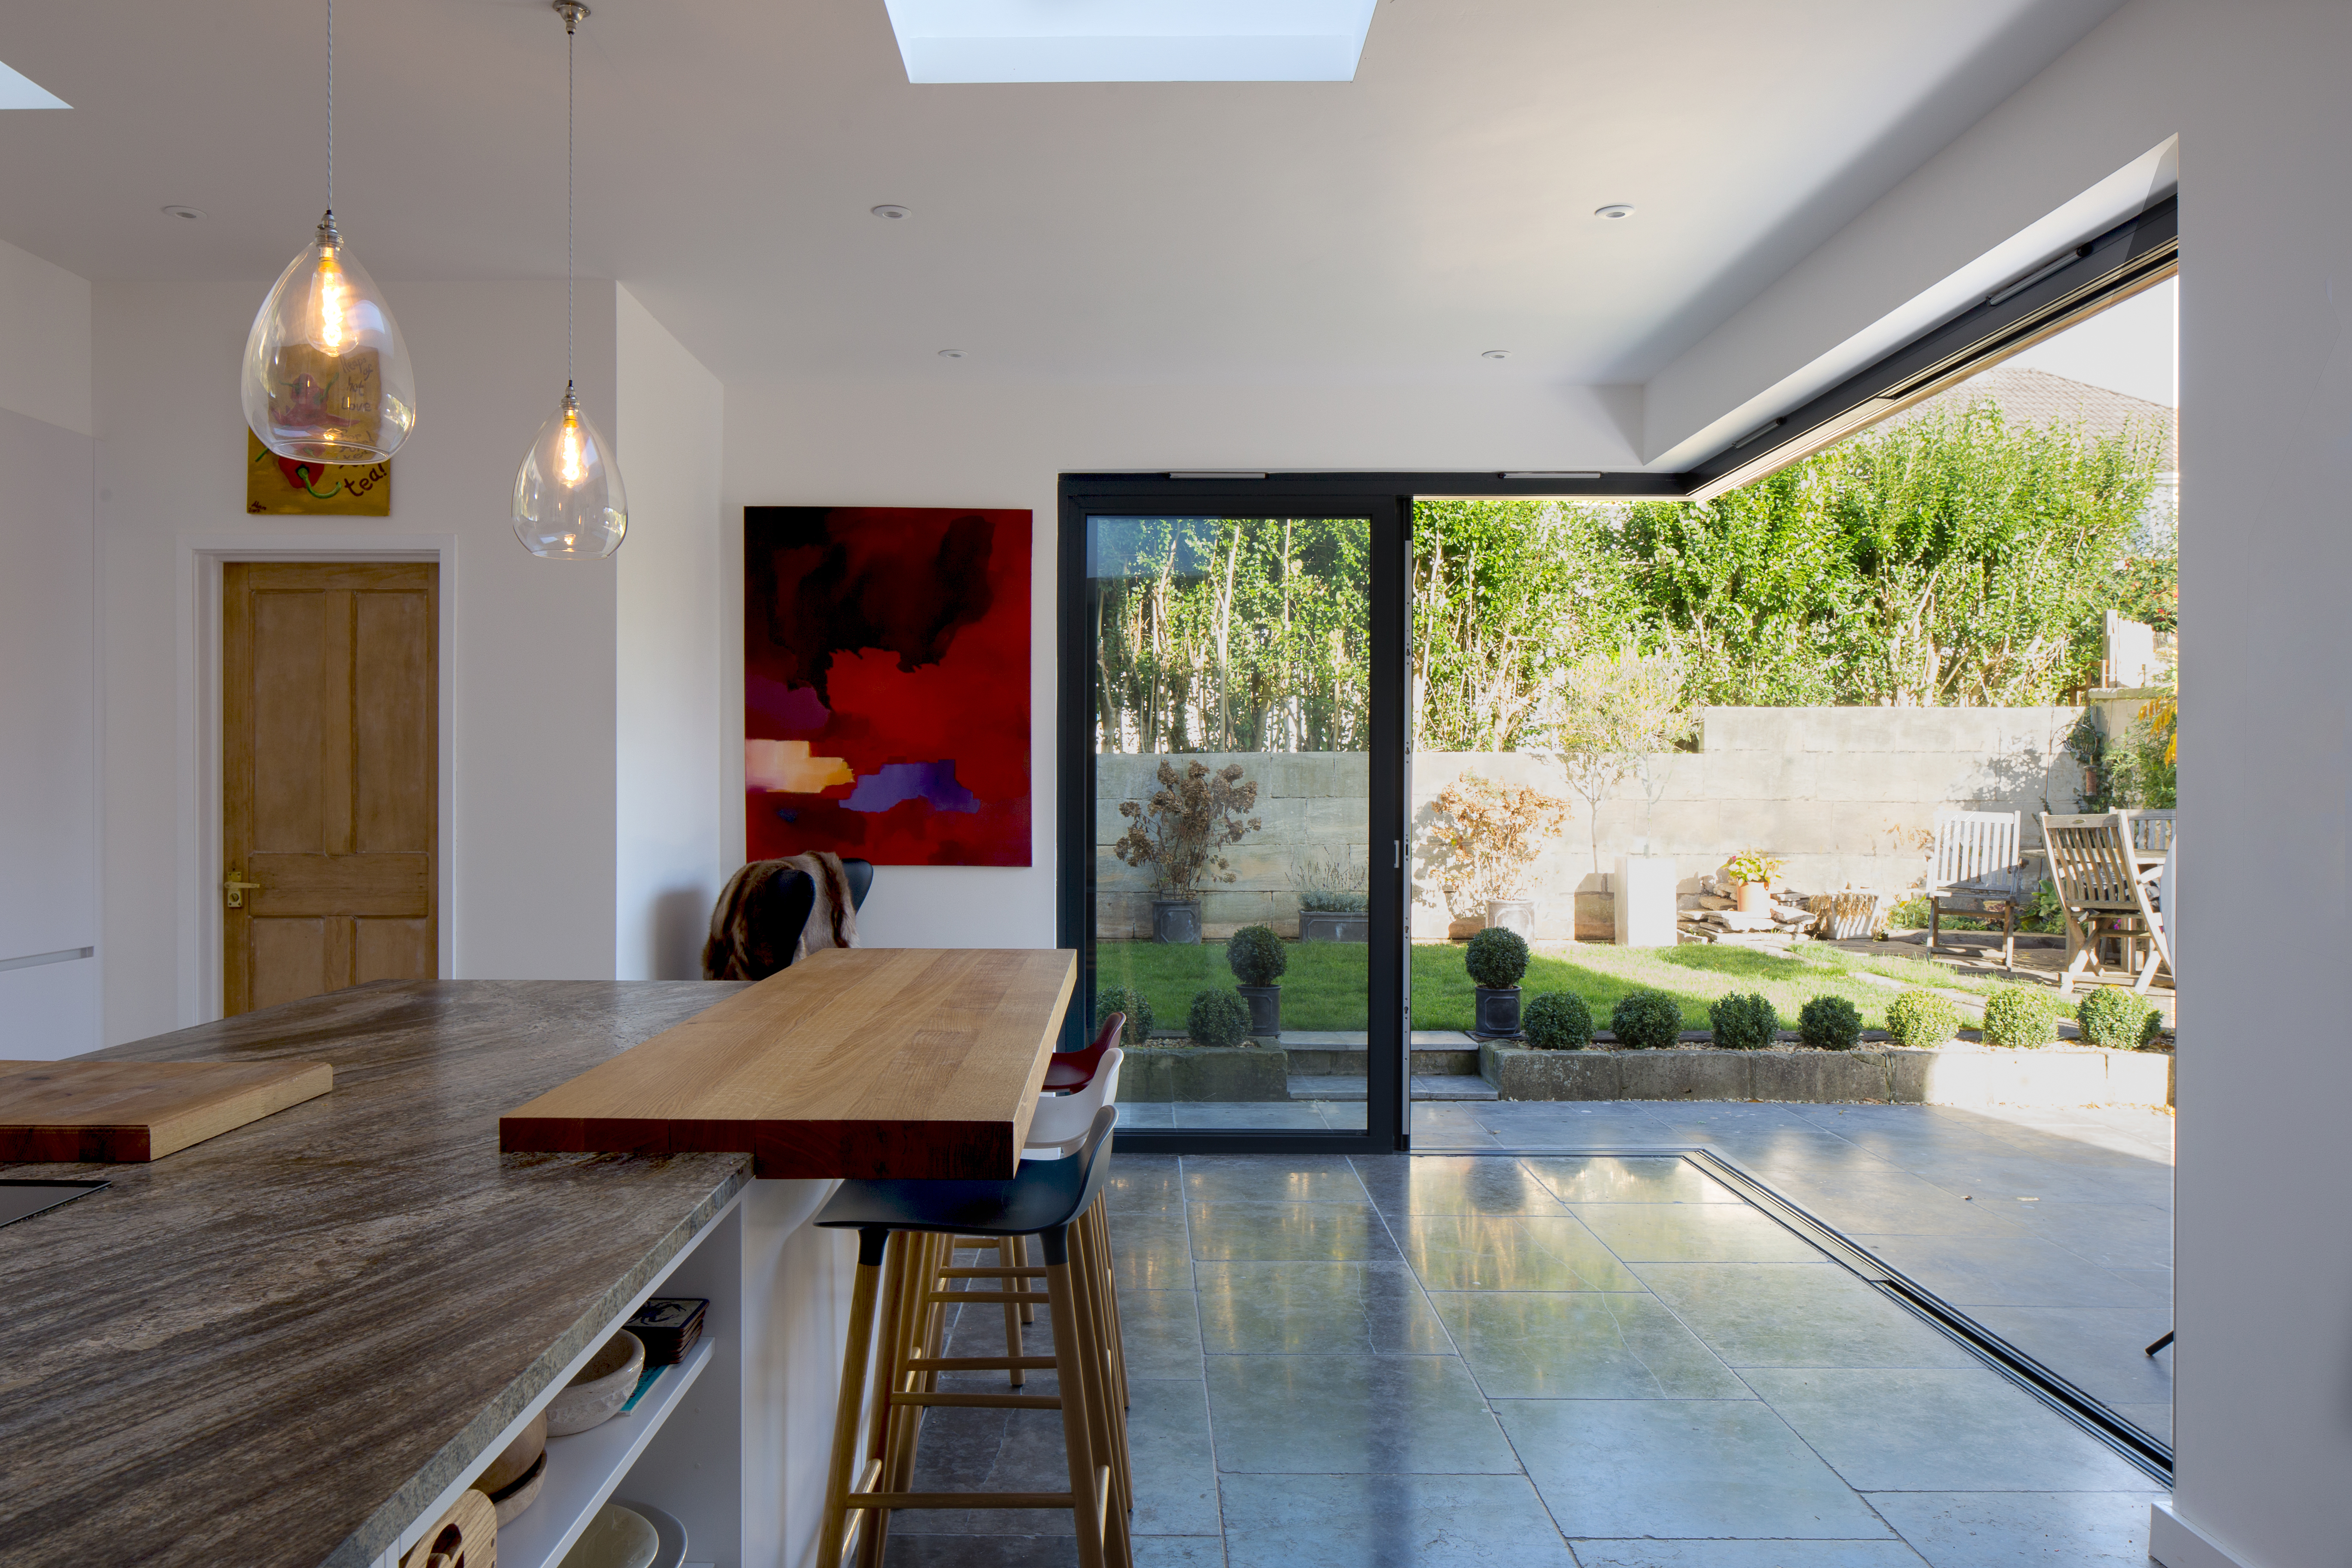 Image illustrating contemporary extension with inside to outside relationship